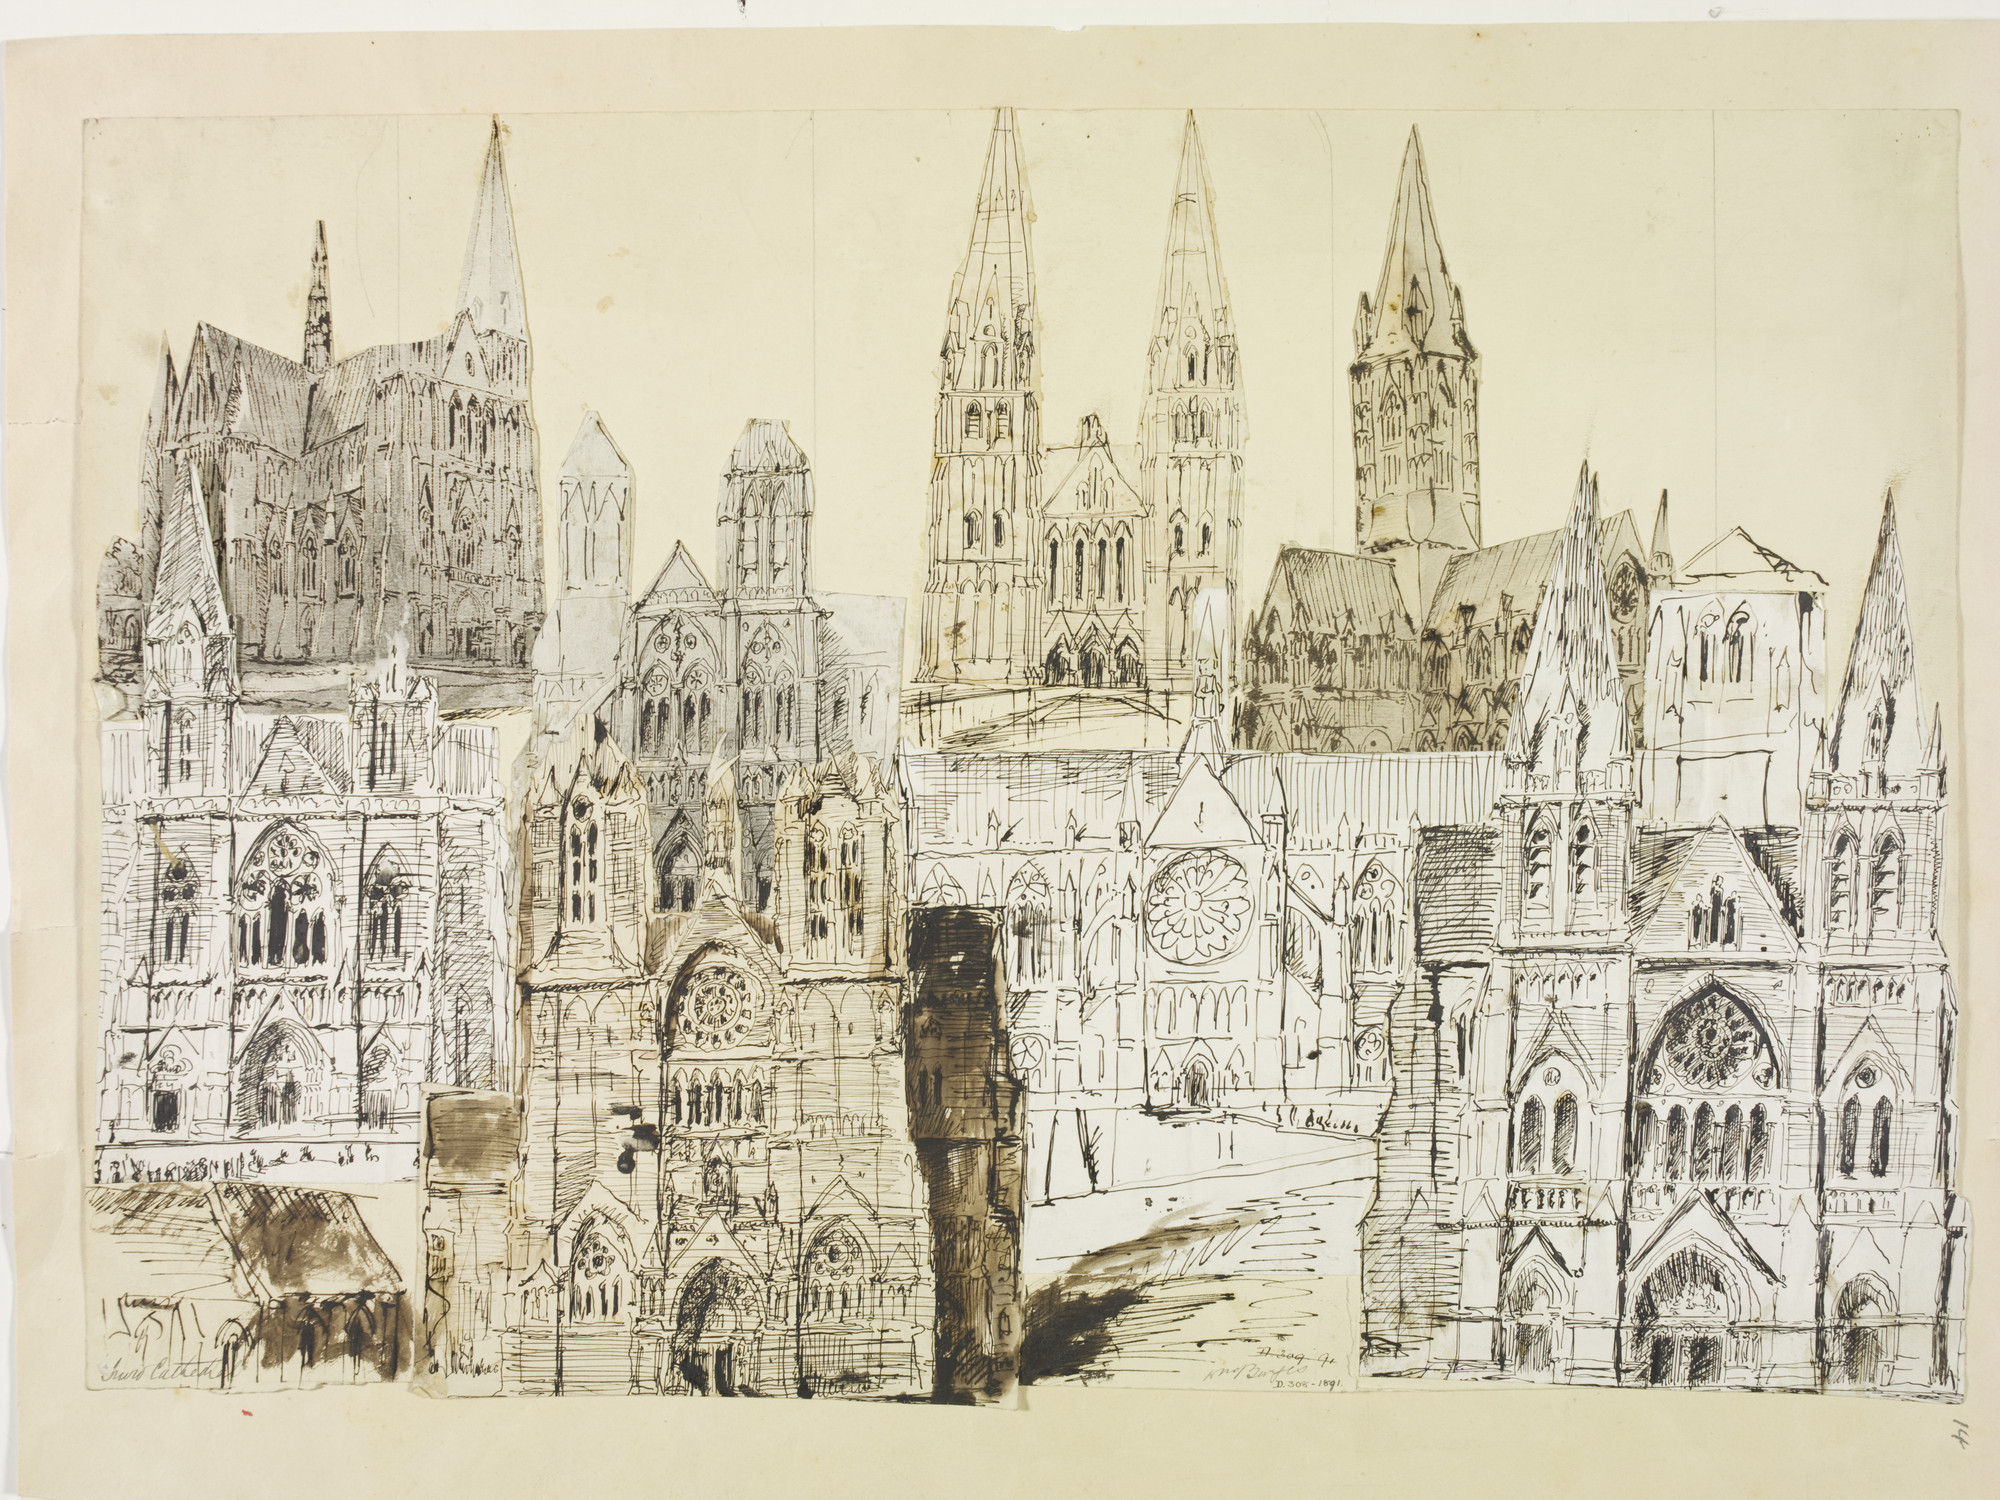 The Computer vs The Hand In Architectural Drawing: ArchDaily Readers Respond, Designs for Truro Cathedral, 1878 Artist: William Burges. Image Courtesy of Victoria and Albert Museum, London